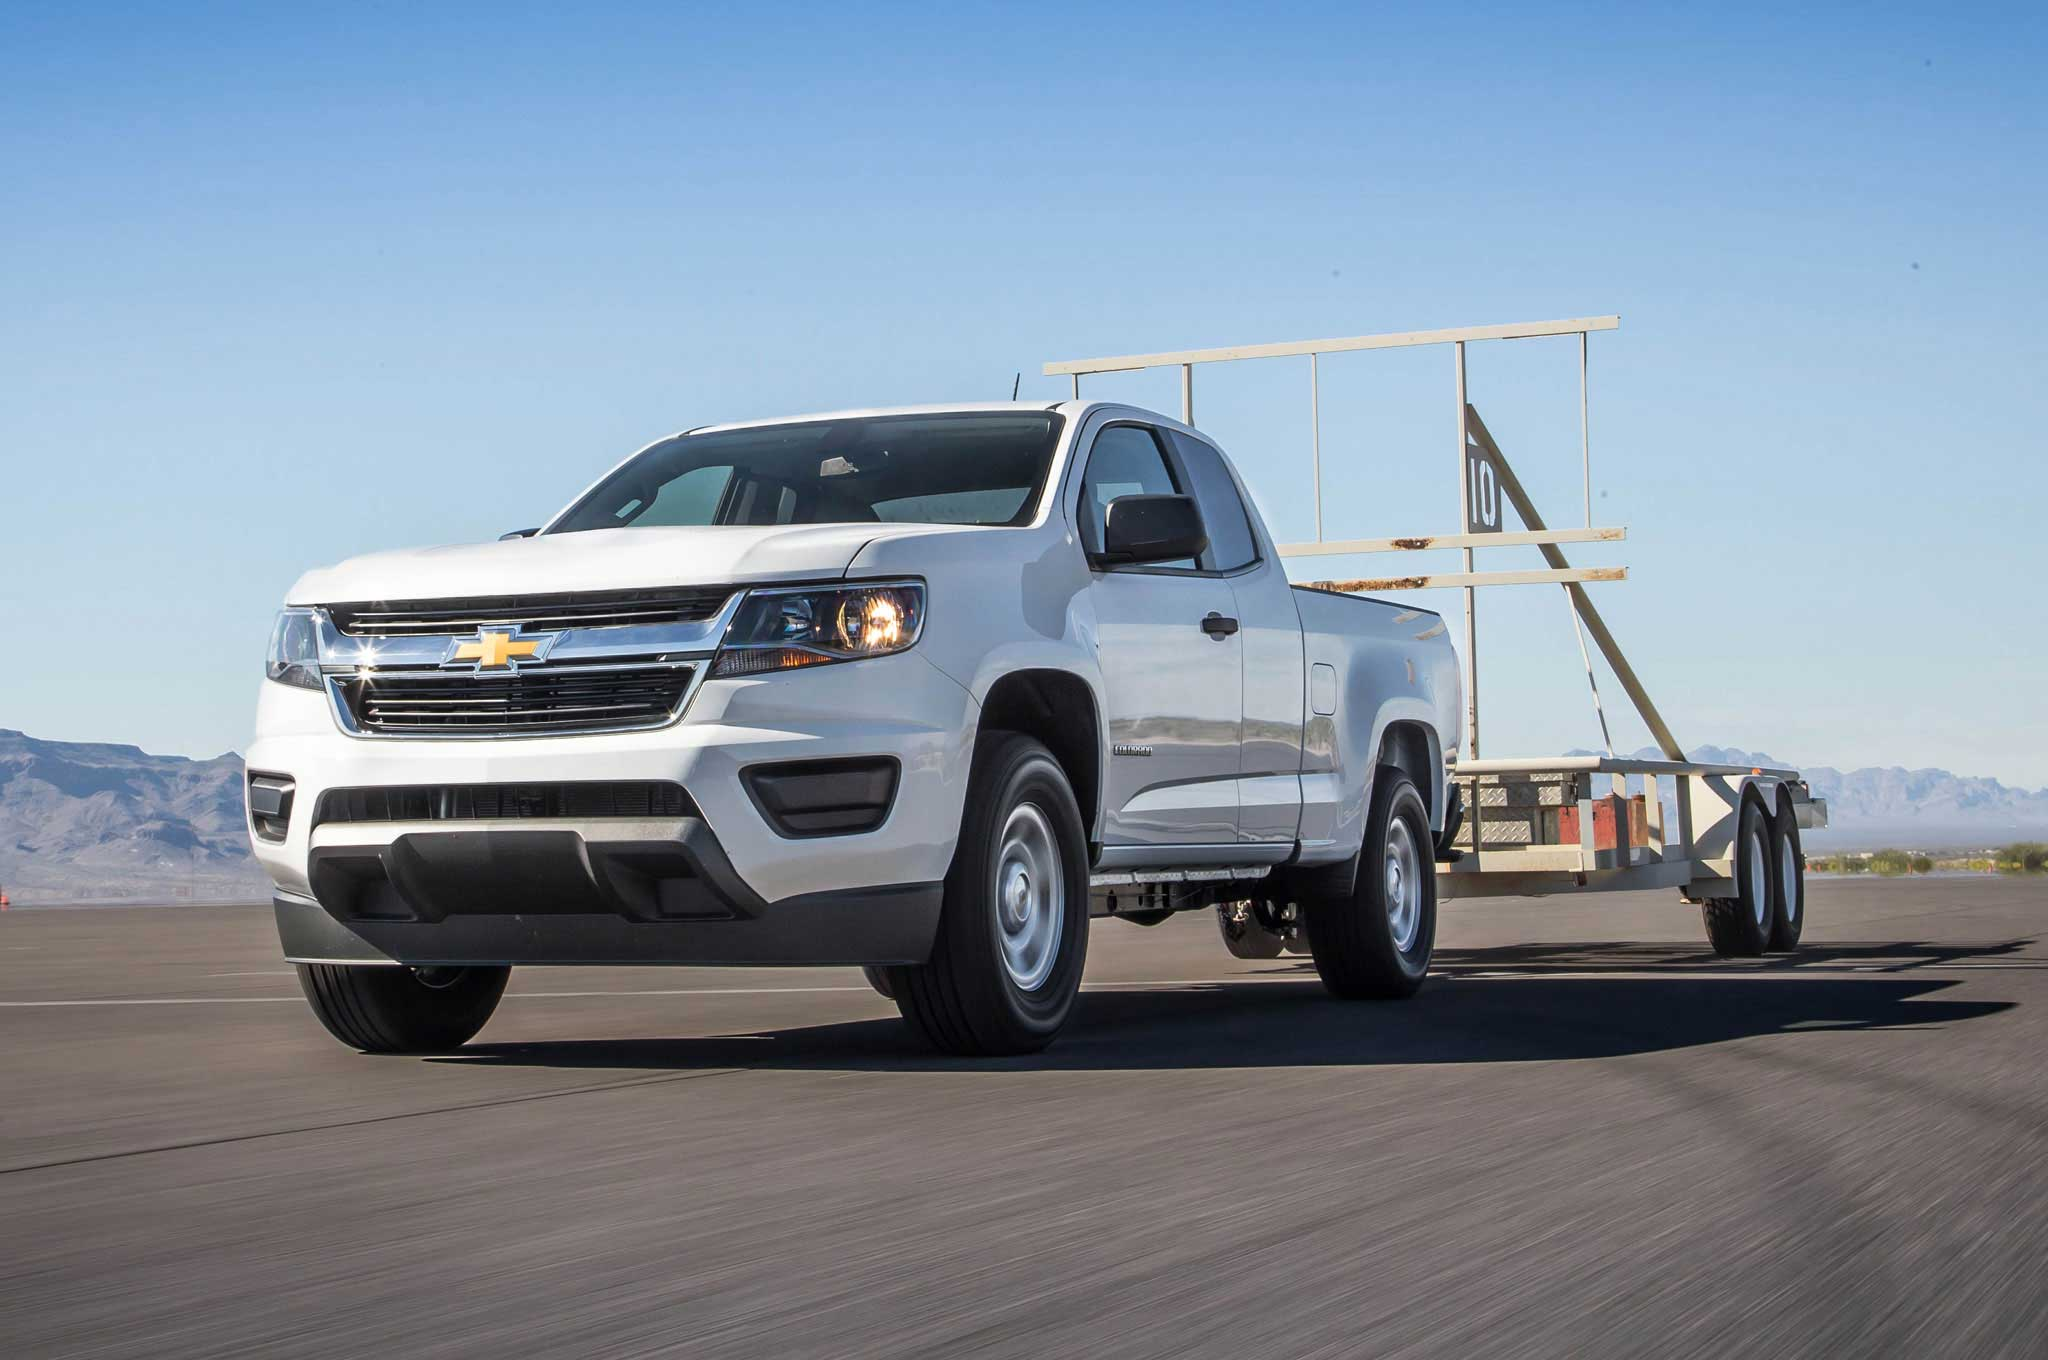 2015 chevrolet colorado review lowrider. Black Bedroom Furniture Sets. Home Design Ideas